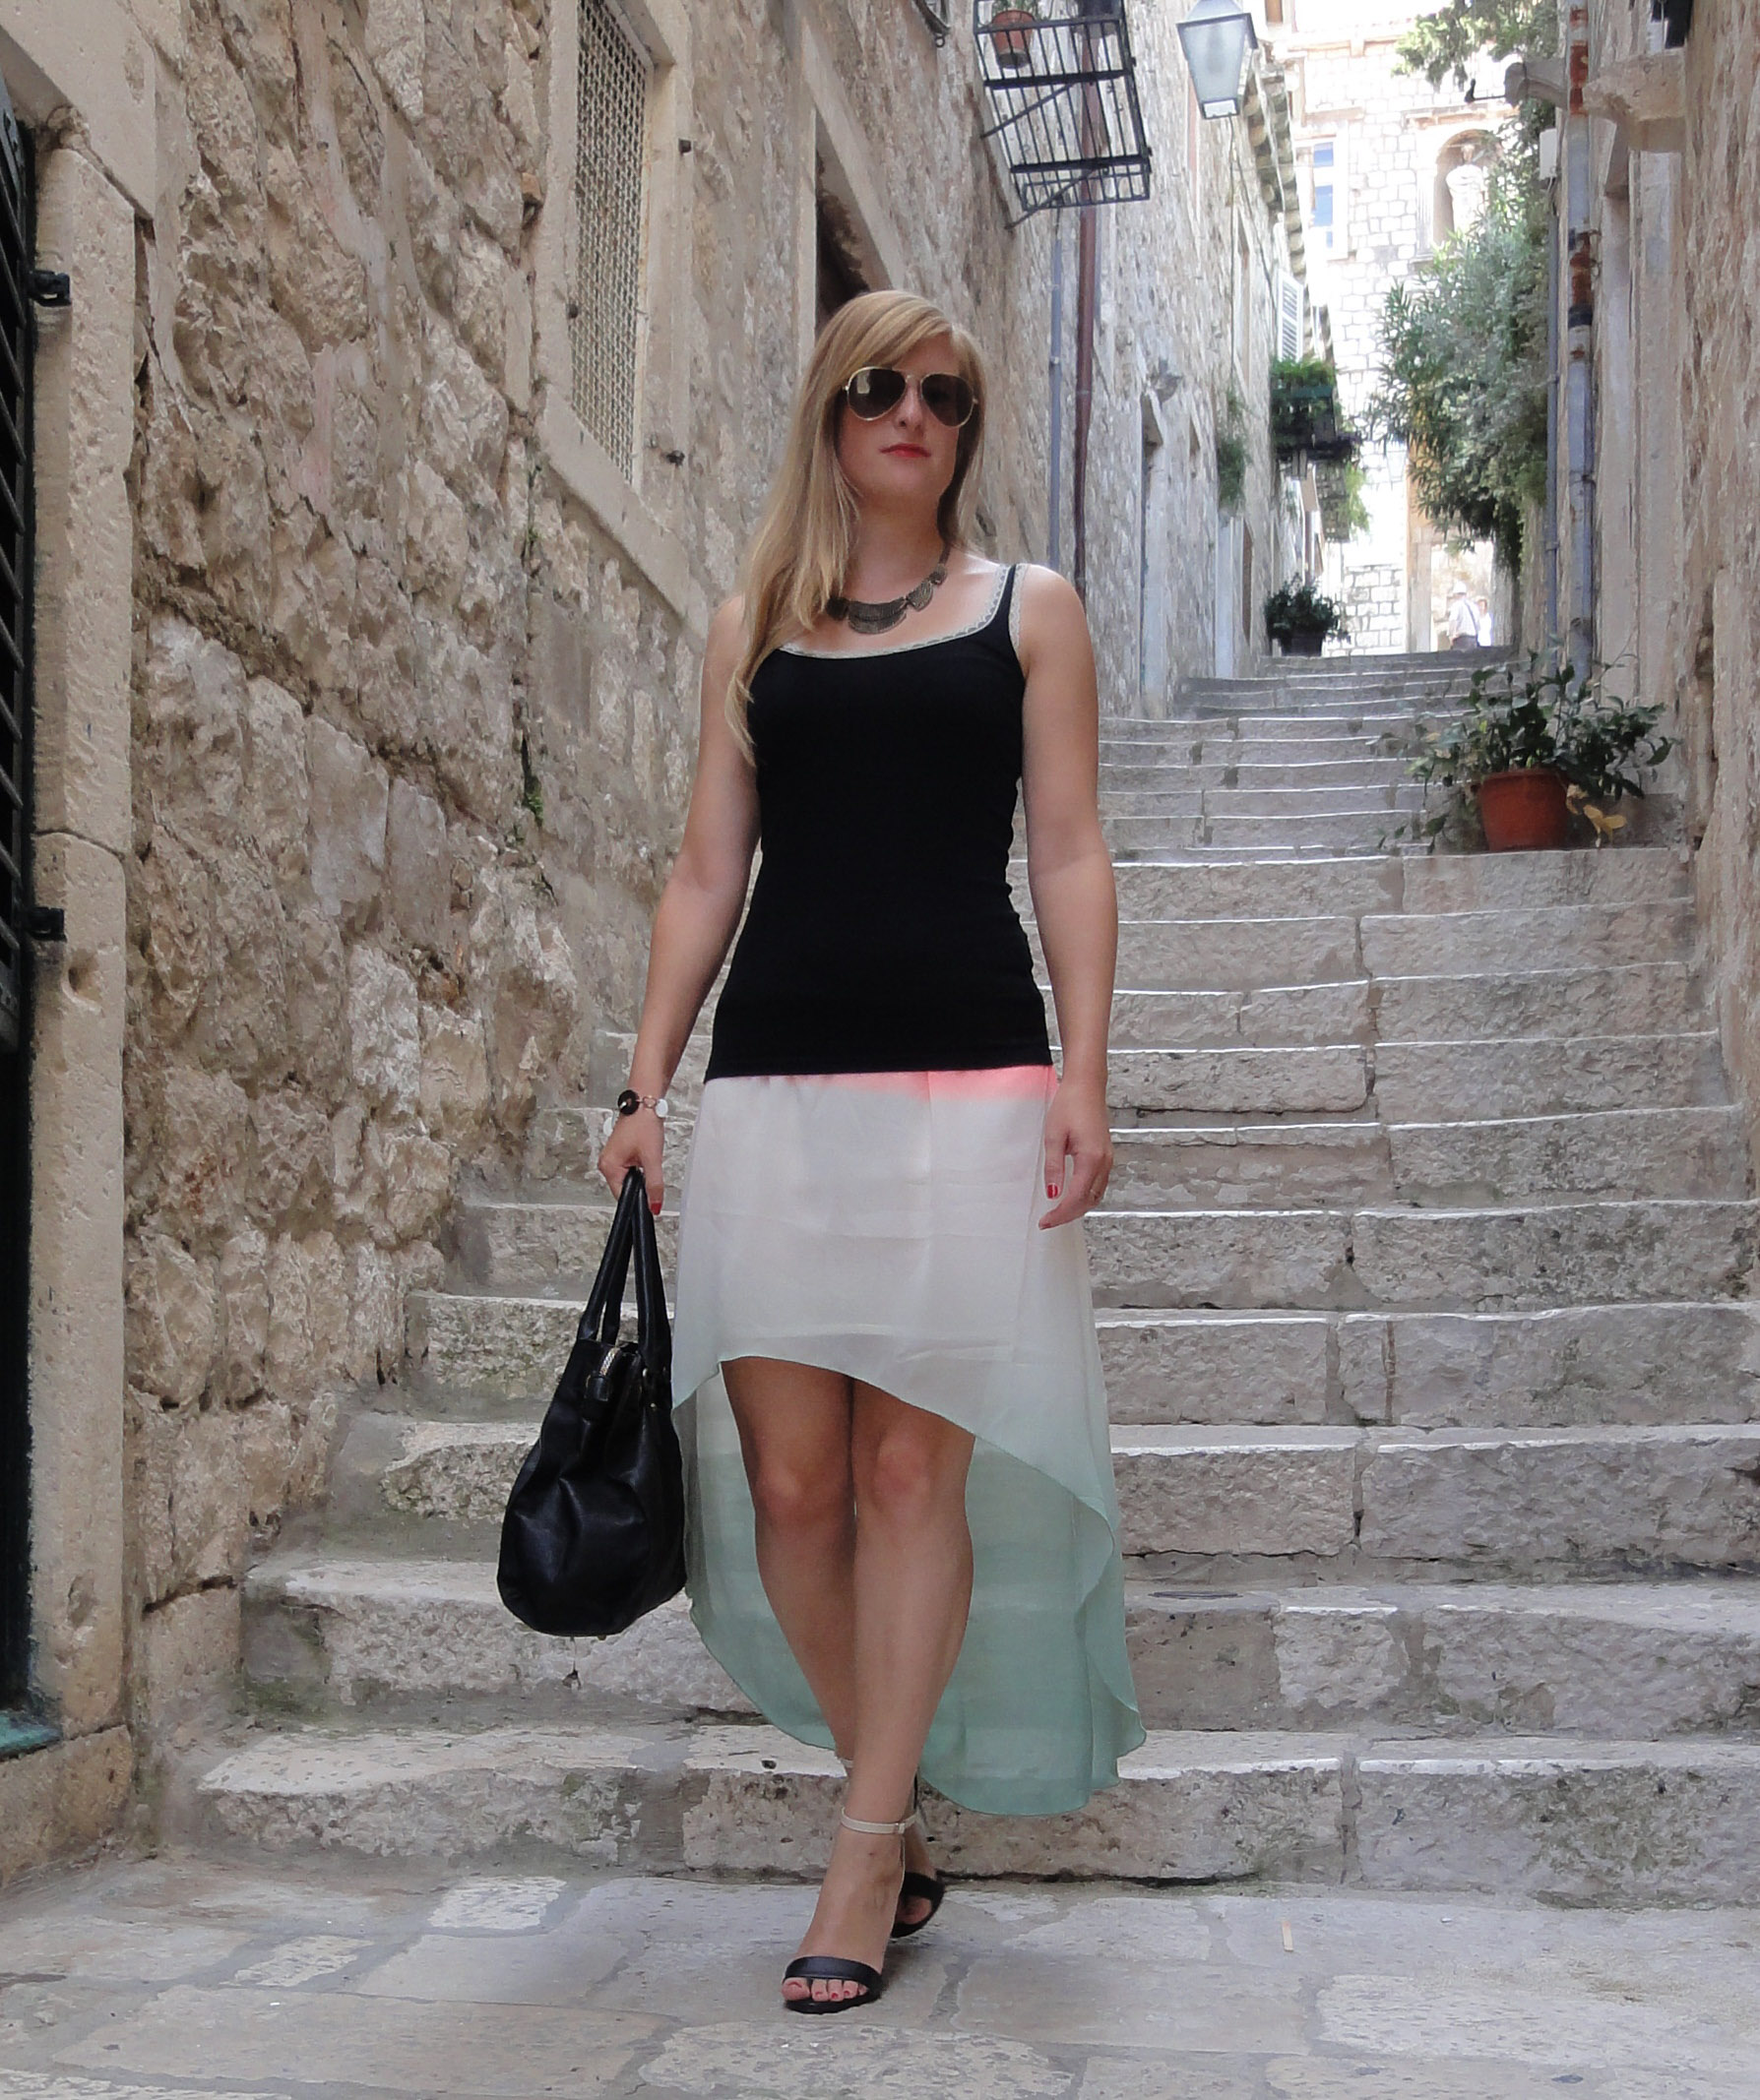 Mullet Skirt In Dubrovnik | Vokuhila Rock Richtig ...